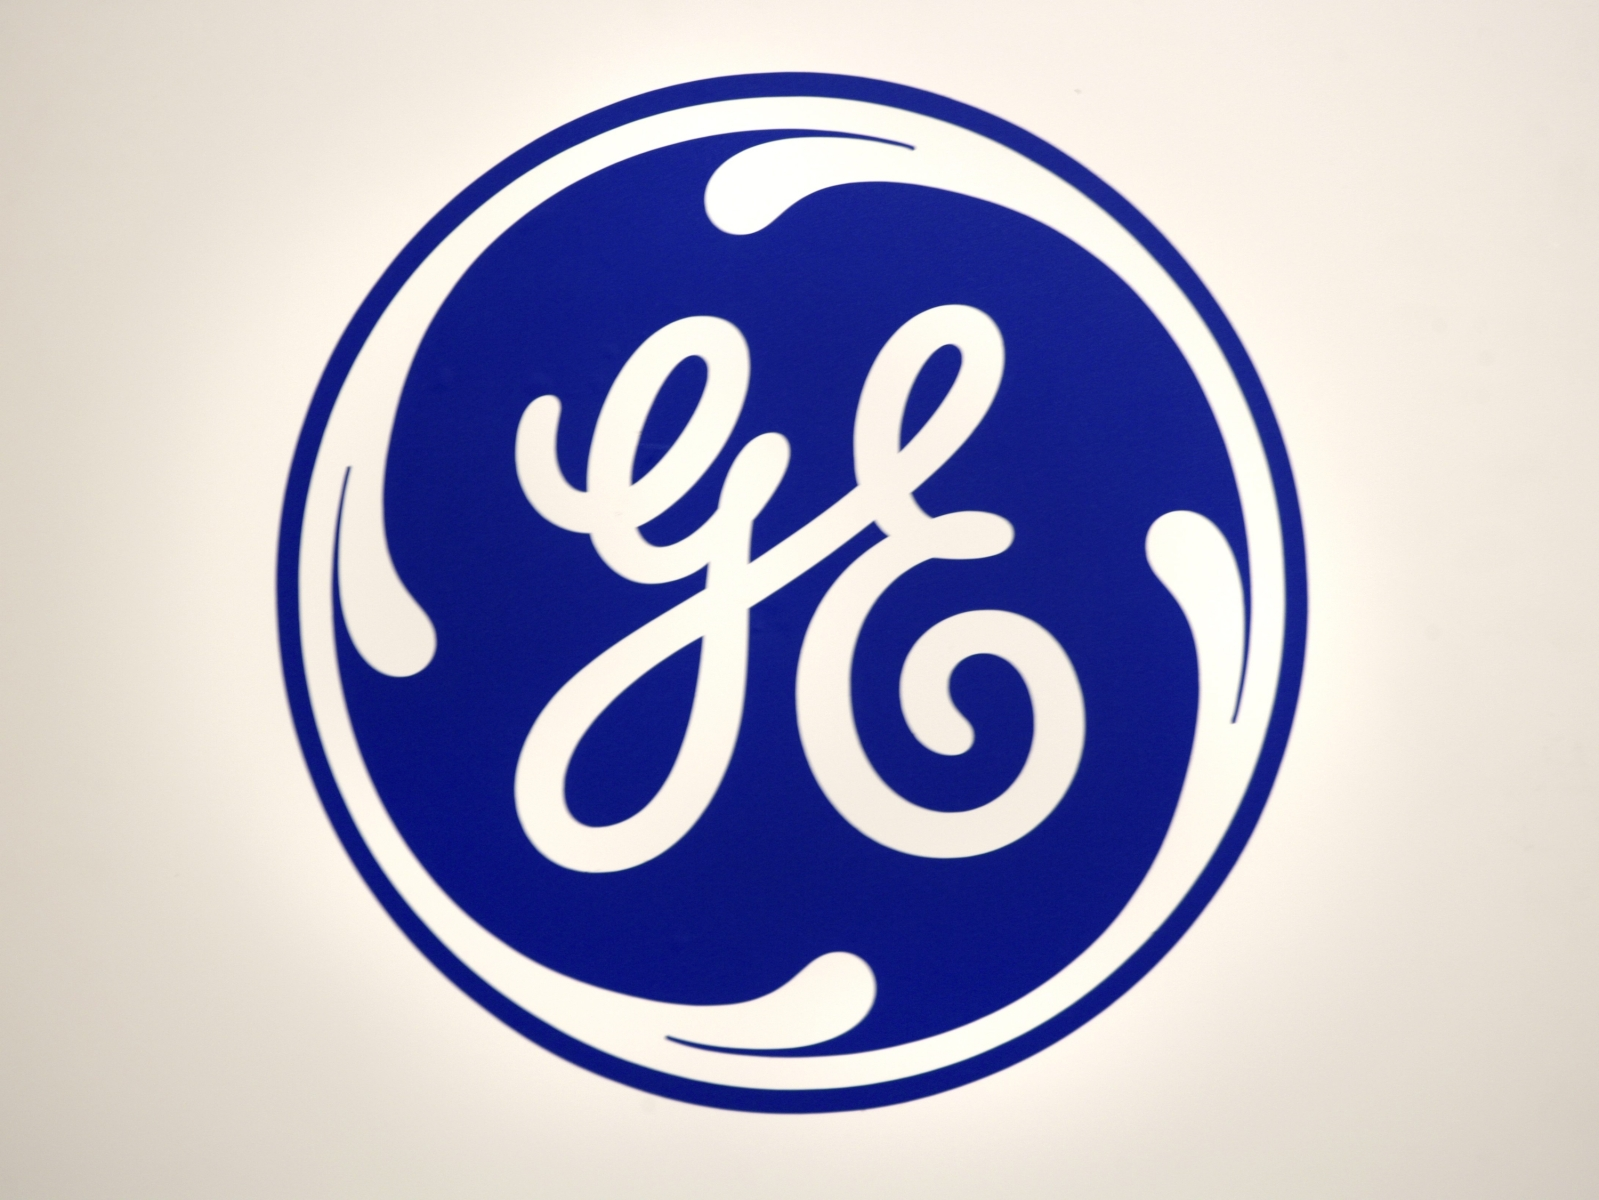 Logo of General Electric GE.  GE recently announced that it would be replacing current CEO John Flannery with H. Lawrence Culp. (Photo by Ulrich Baumgarten via Getty Images)